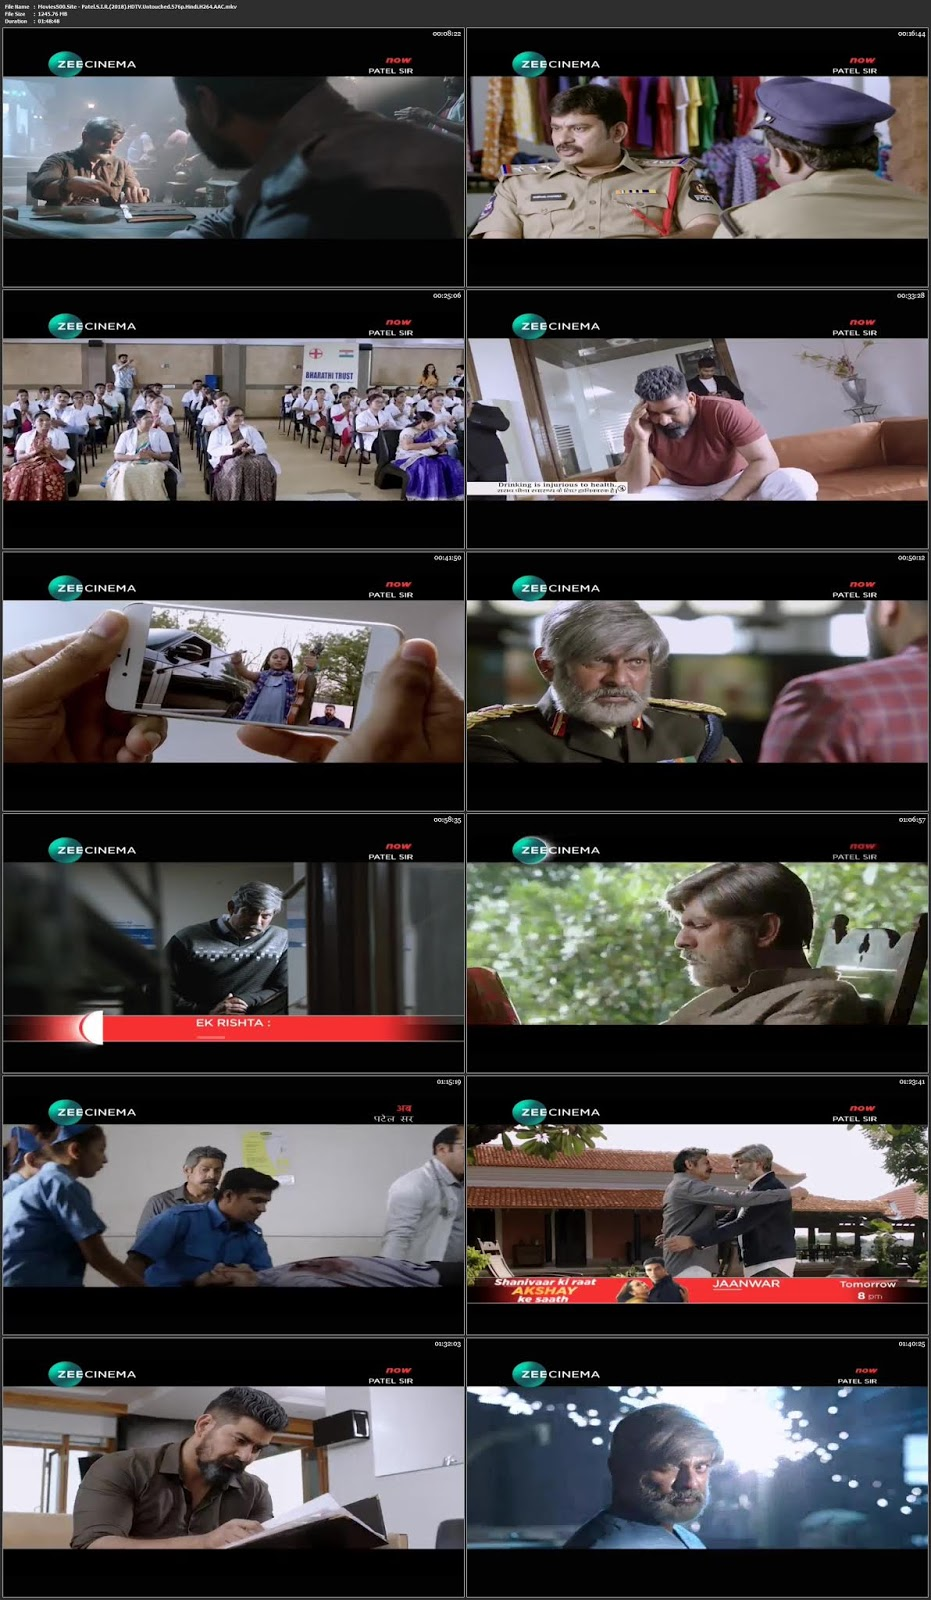 Patel S.I.R 2018 Hindi Dubbed 300MB HDTVRip 480p